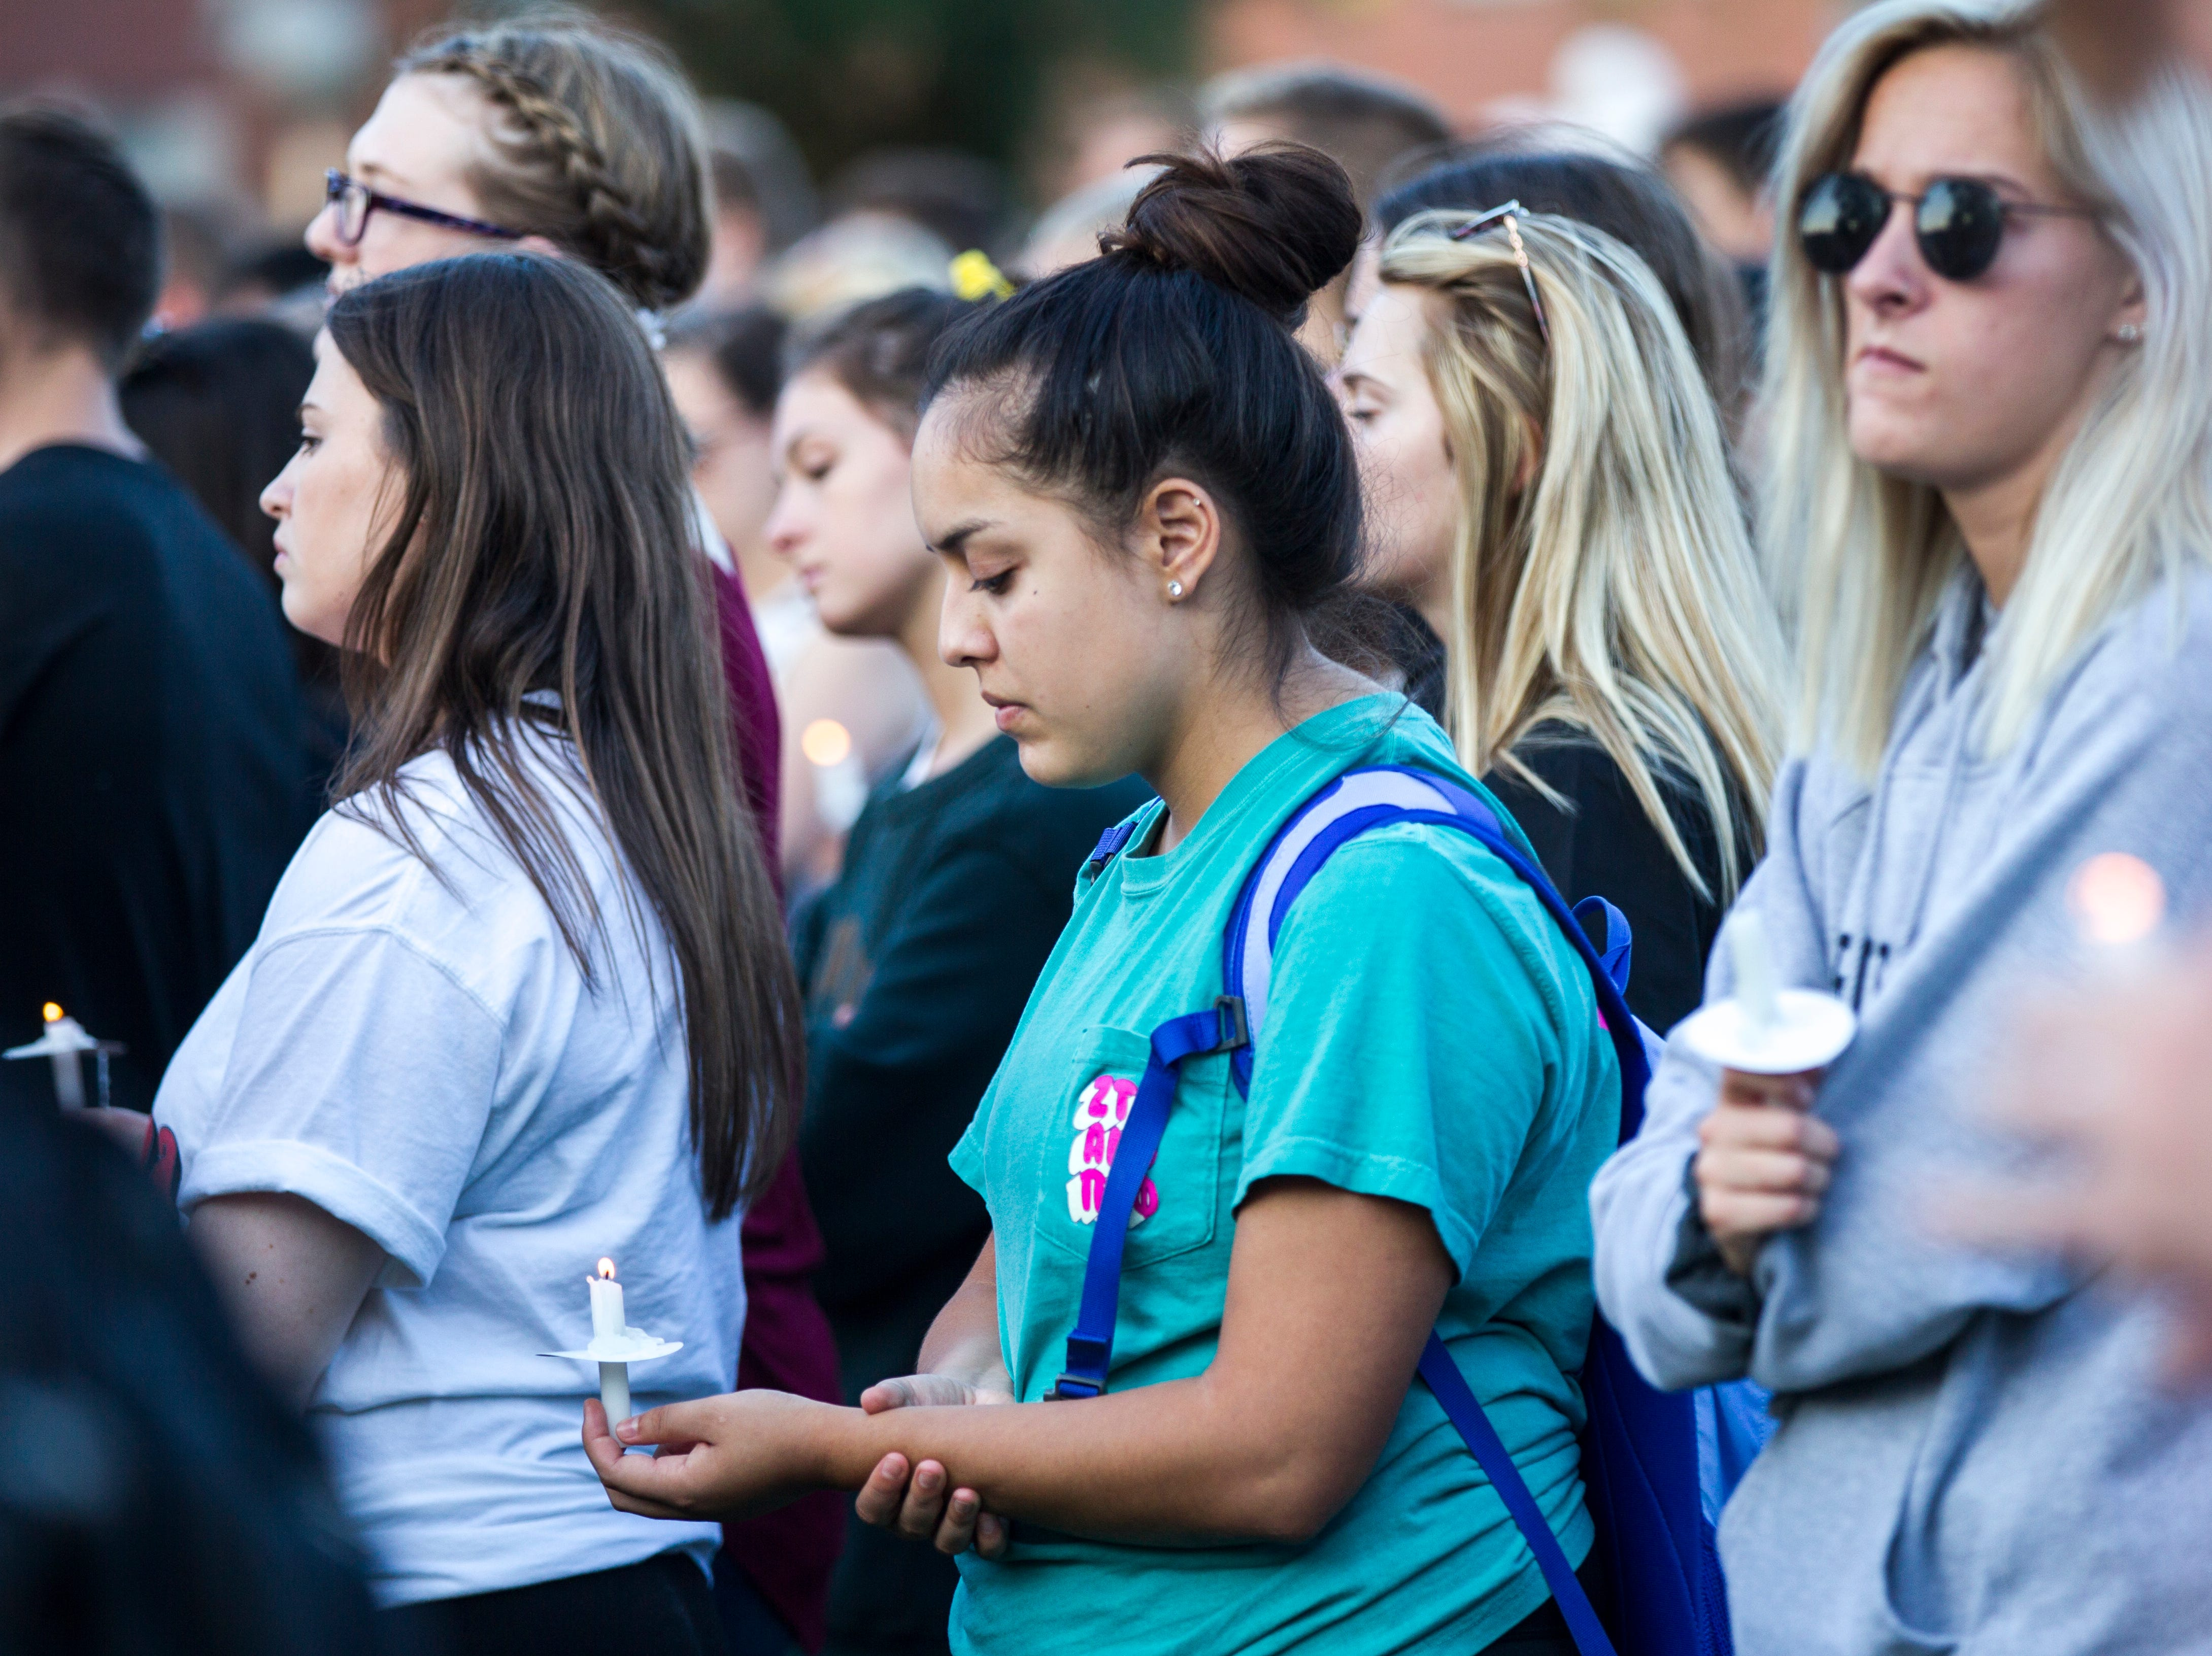 Supporters hold candles during a vigil for Mollie Tibbetts on Wednesday, Aug. 22, 2018, in Hubbard Park on the University of Iowa campus in Iowa City.